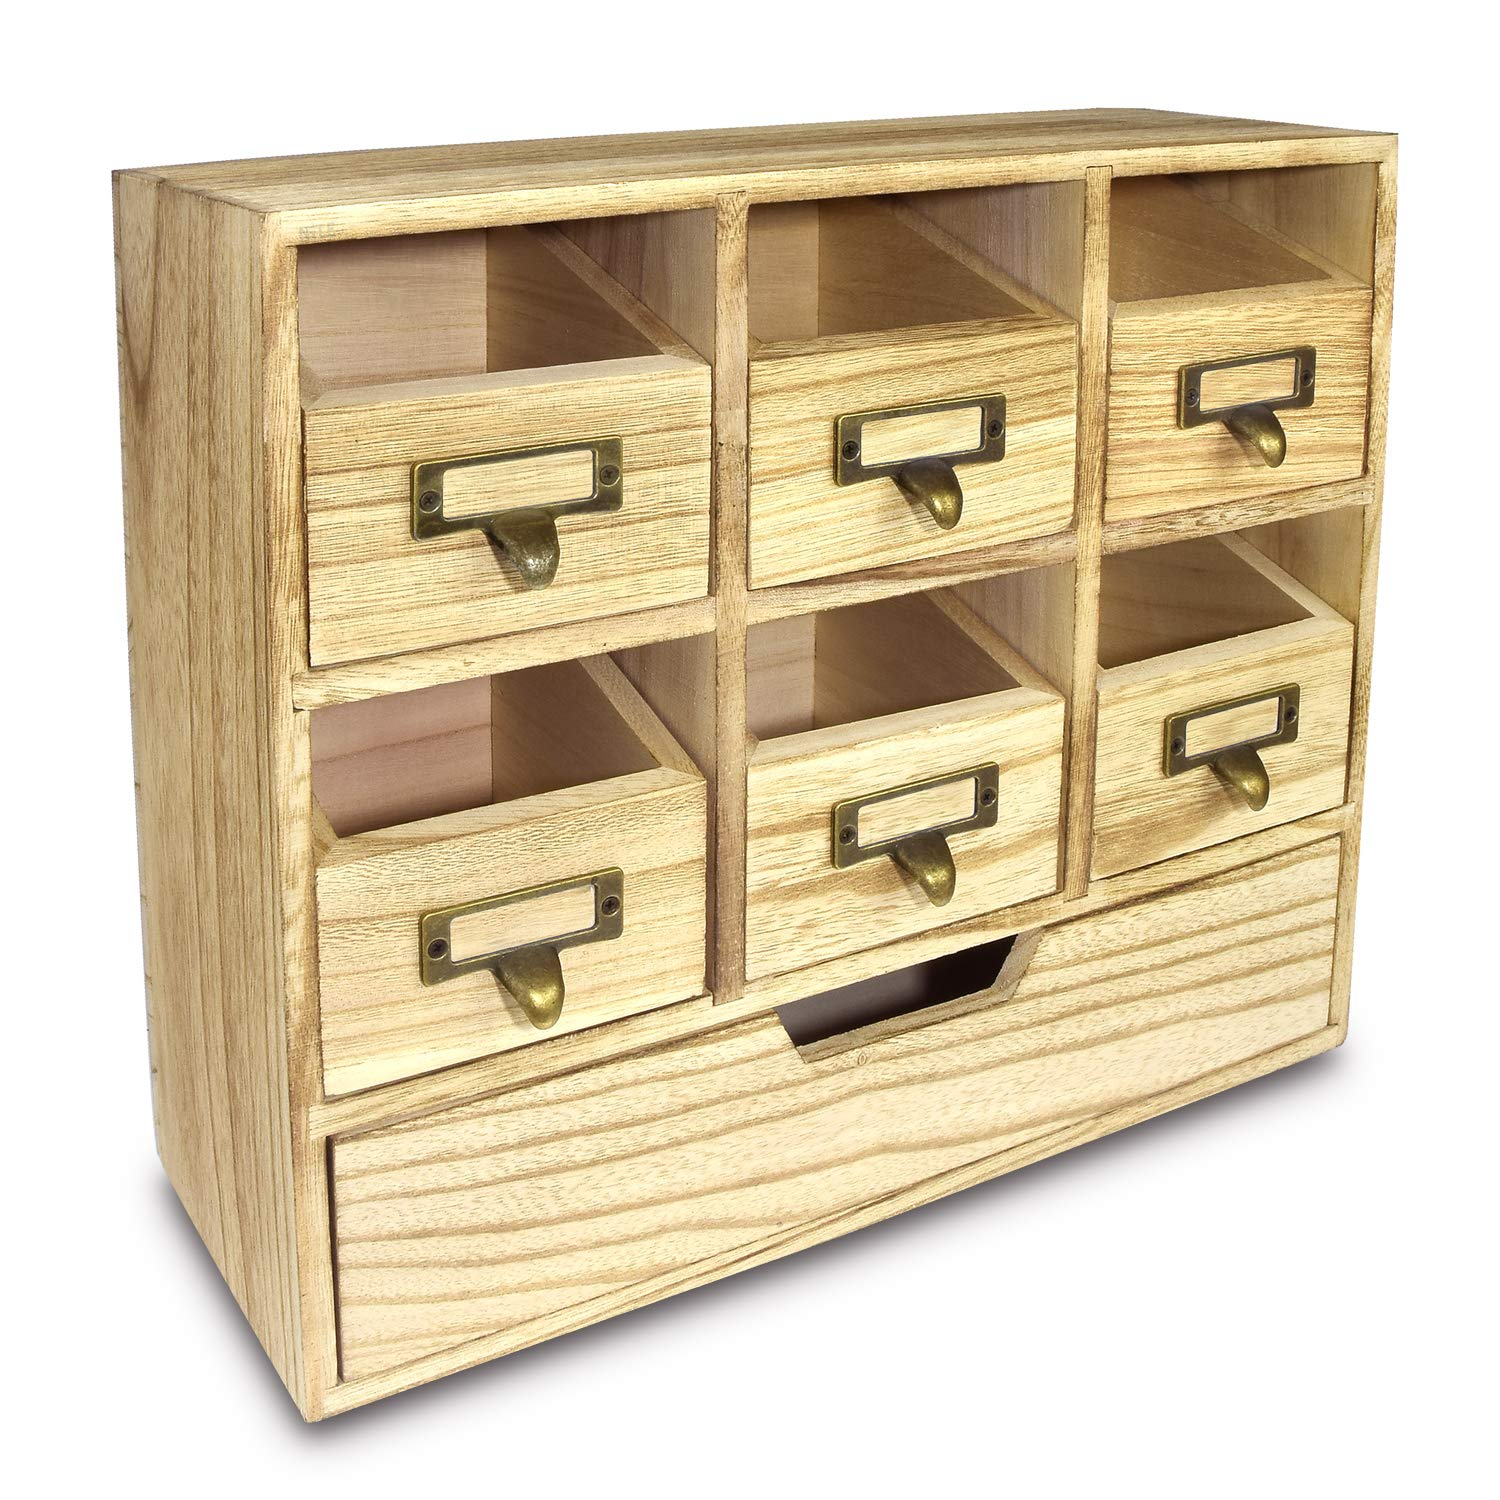 Wooden Desktop Drawers & Craft Supplies Storage Cabinet